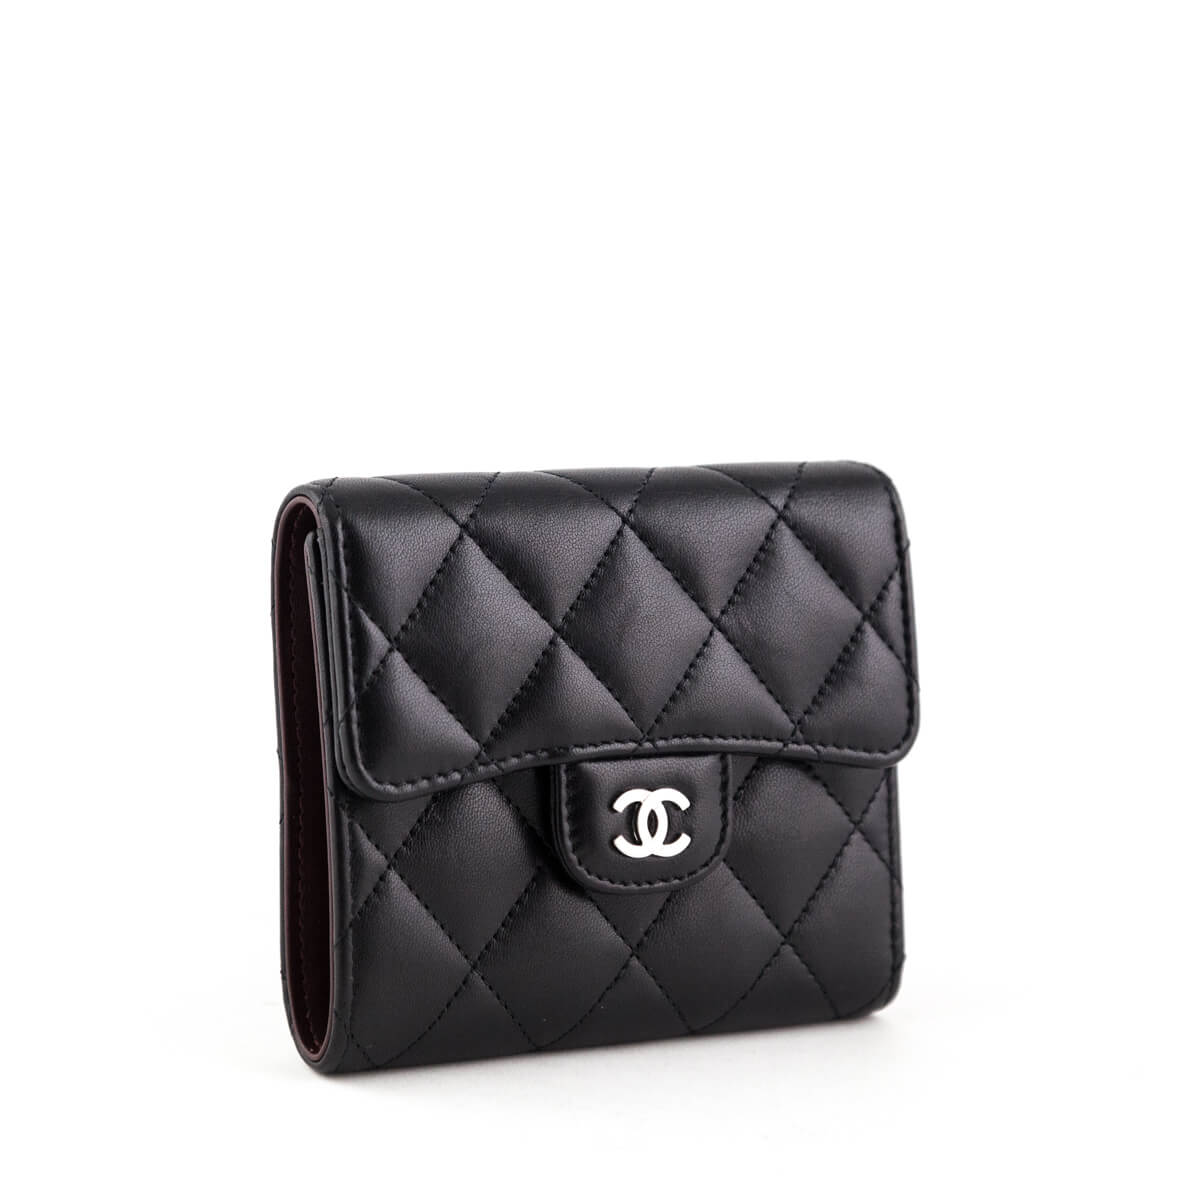 4f07dc6e149a ... Chanel Black Lambskin Small Bifold Wallet SHW - LOVE that BAG - Preowned  Authentic Designer Handbags ...